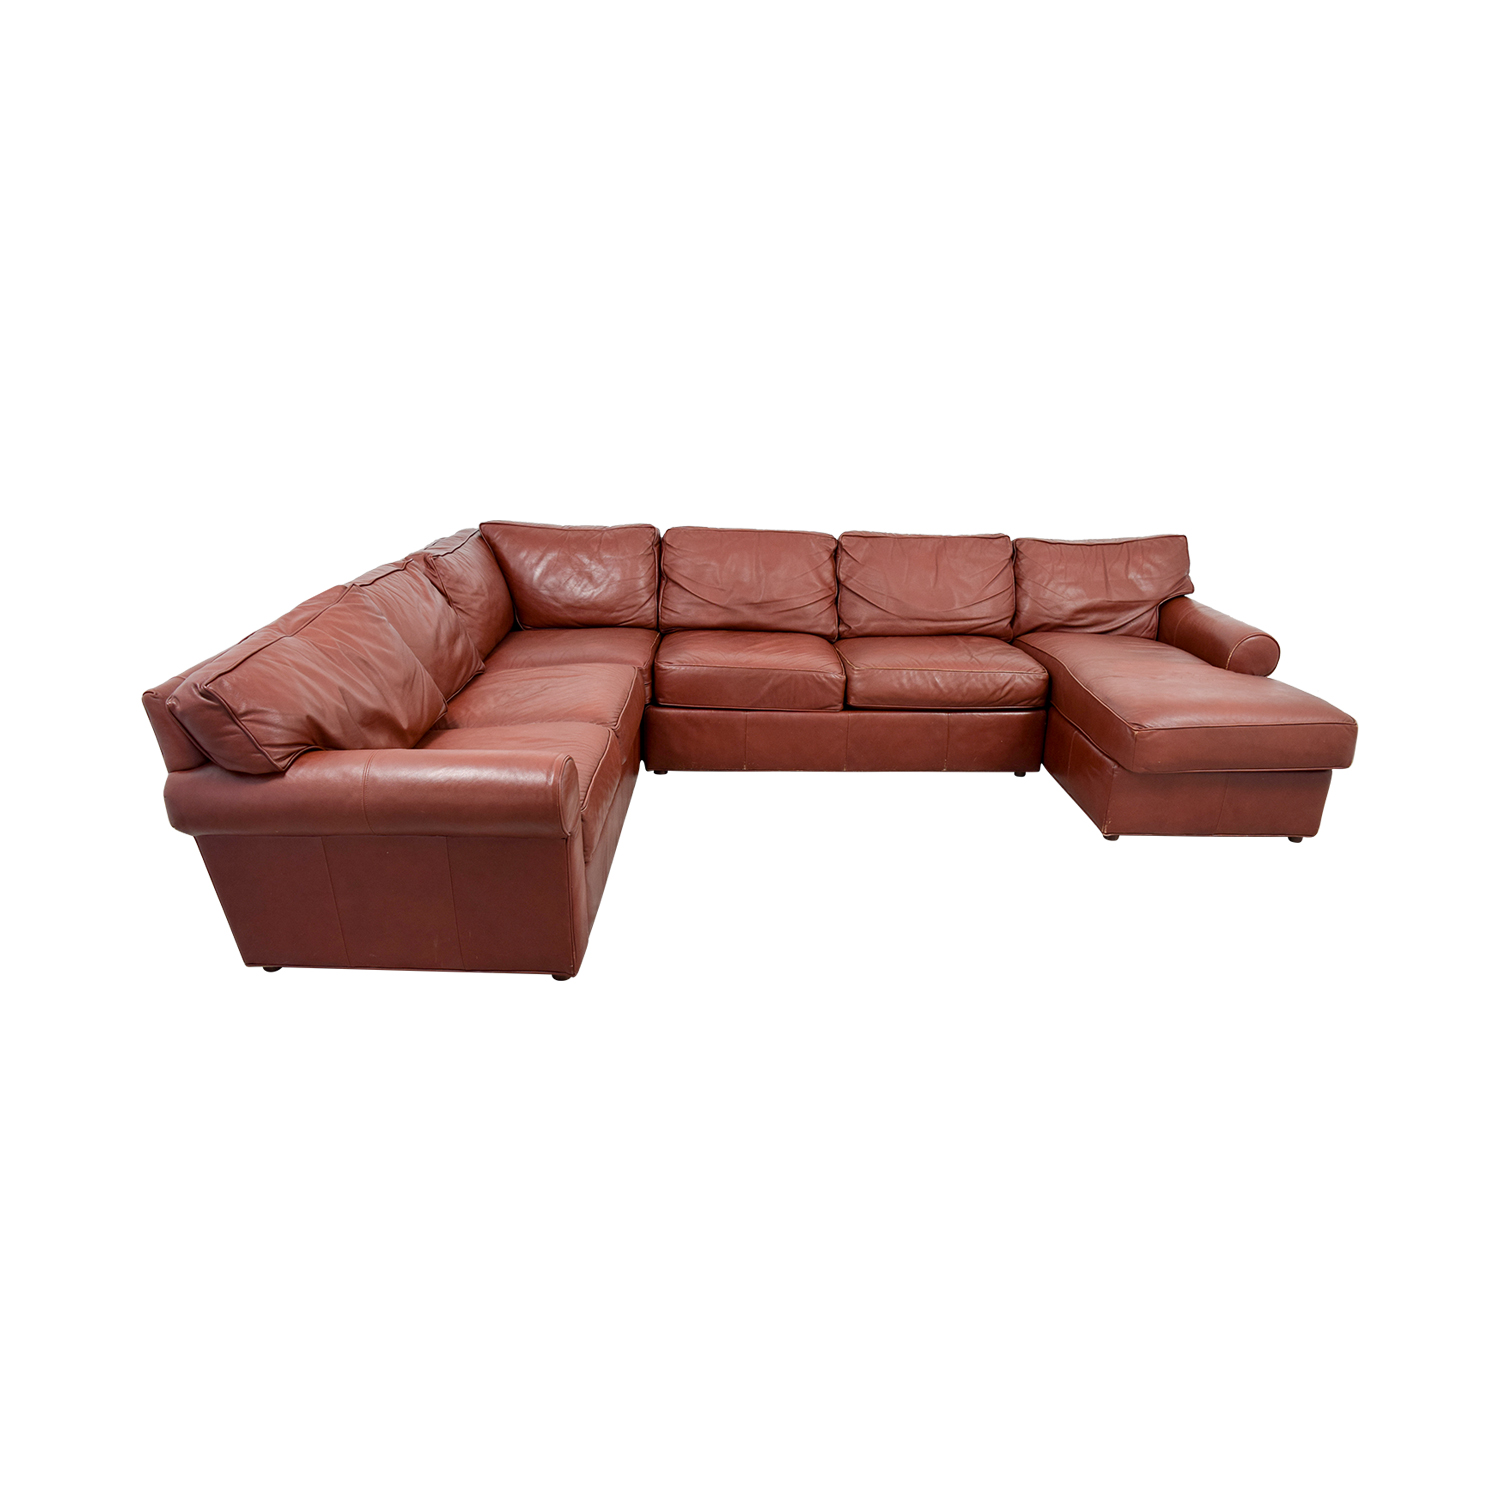 Ethan Allen Ethan Allen Burgundy Leather Sectional with Lounger used